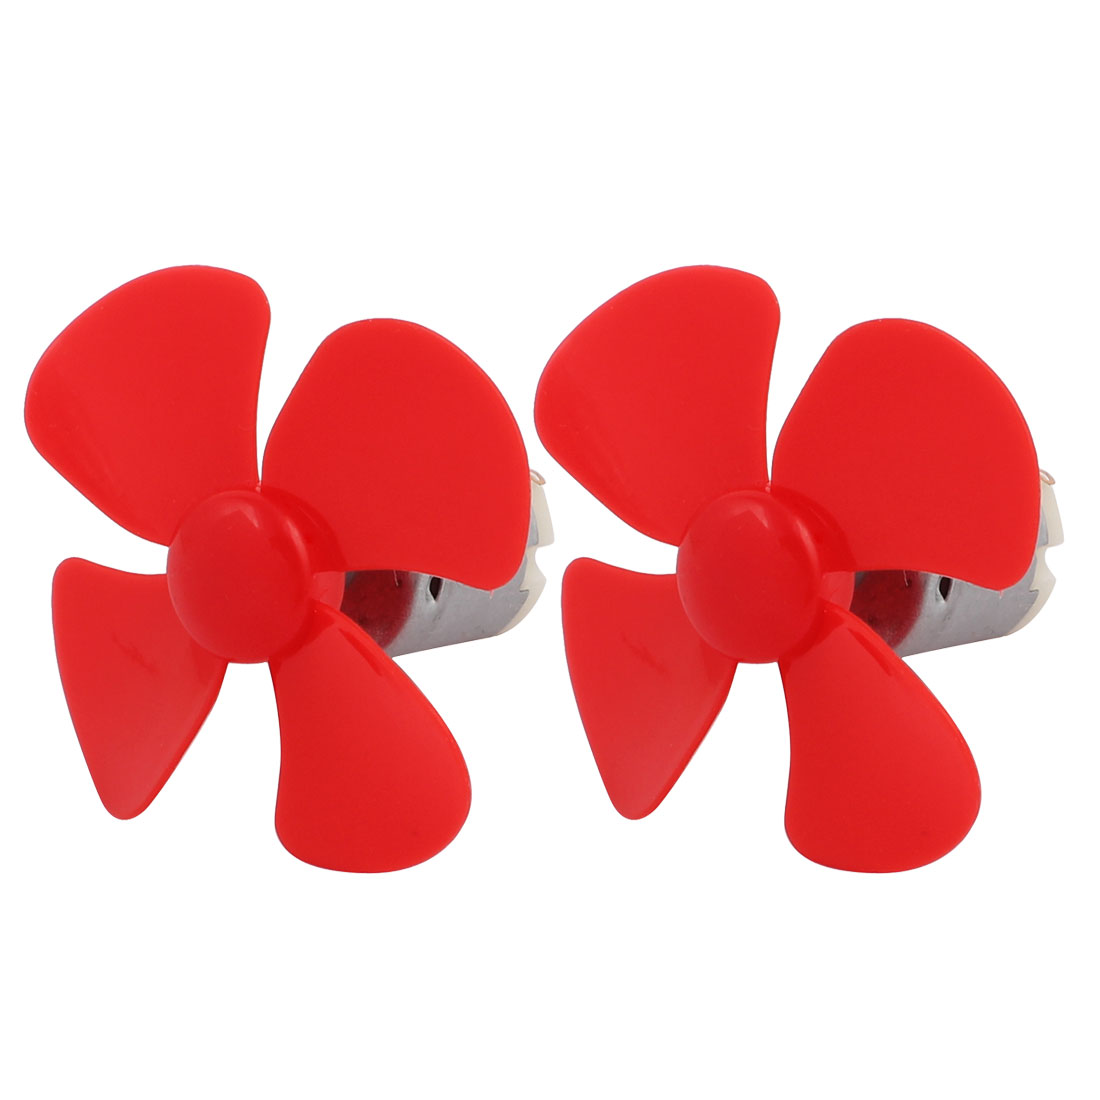 DC 6V 0.38A 7800RPM Strong Force Motor 4 Vanes Red Propeller 60mmx2mm 2Pcs